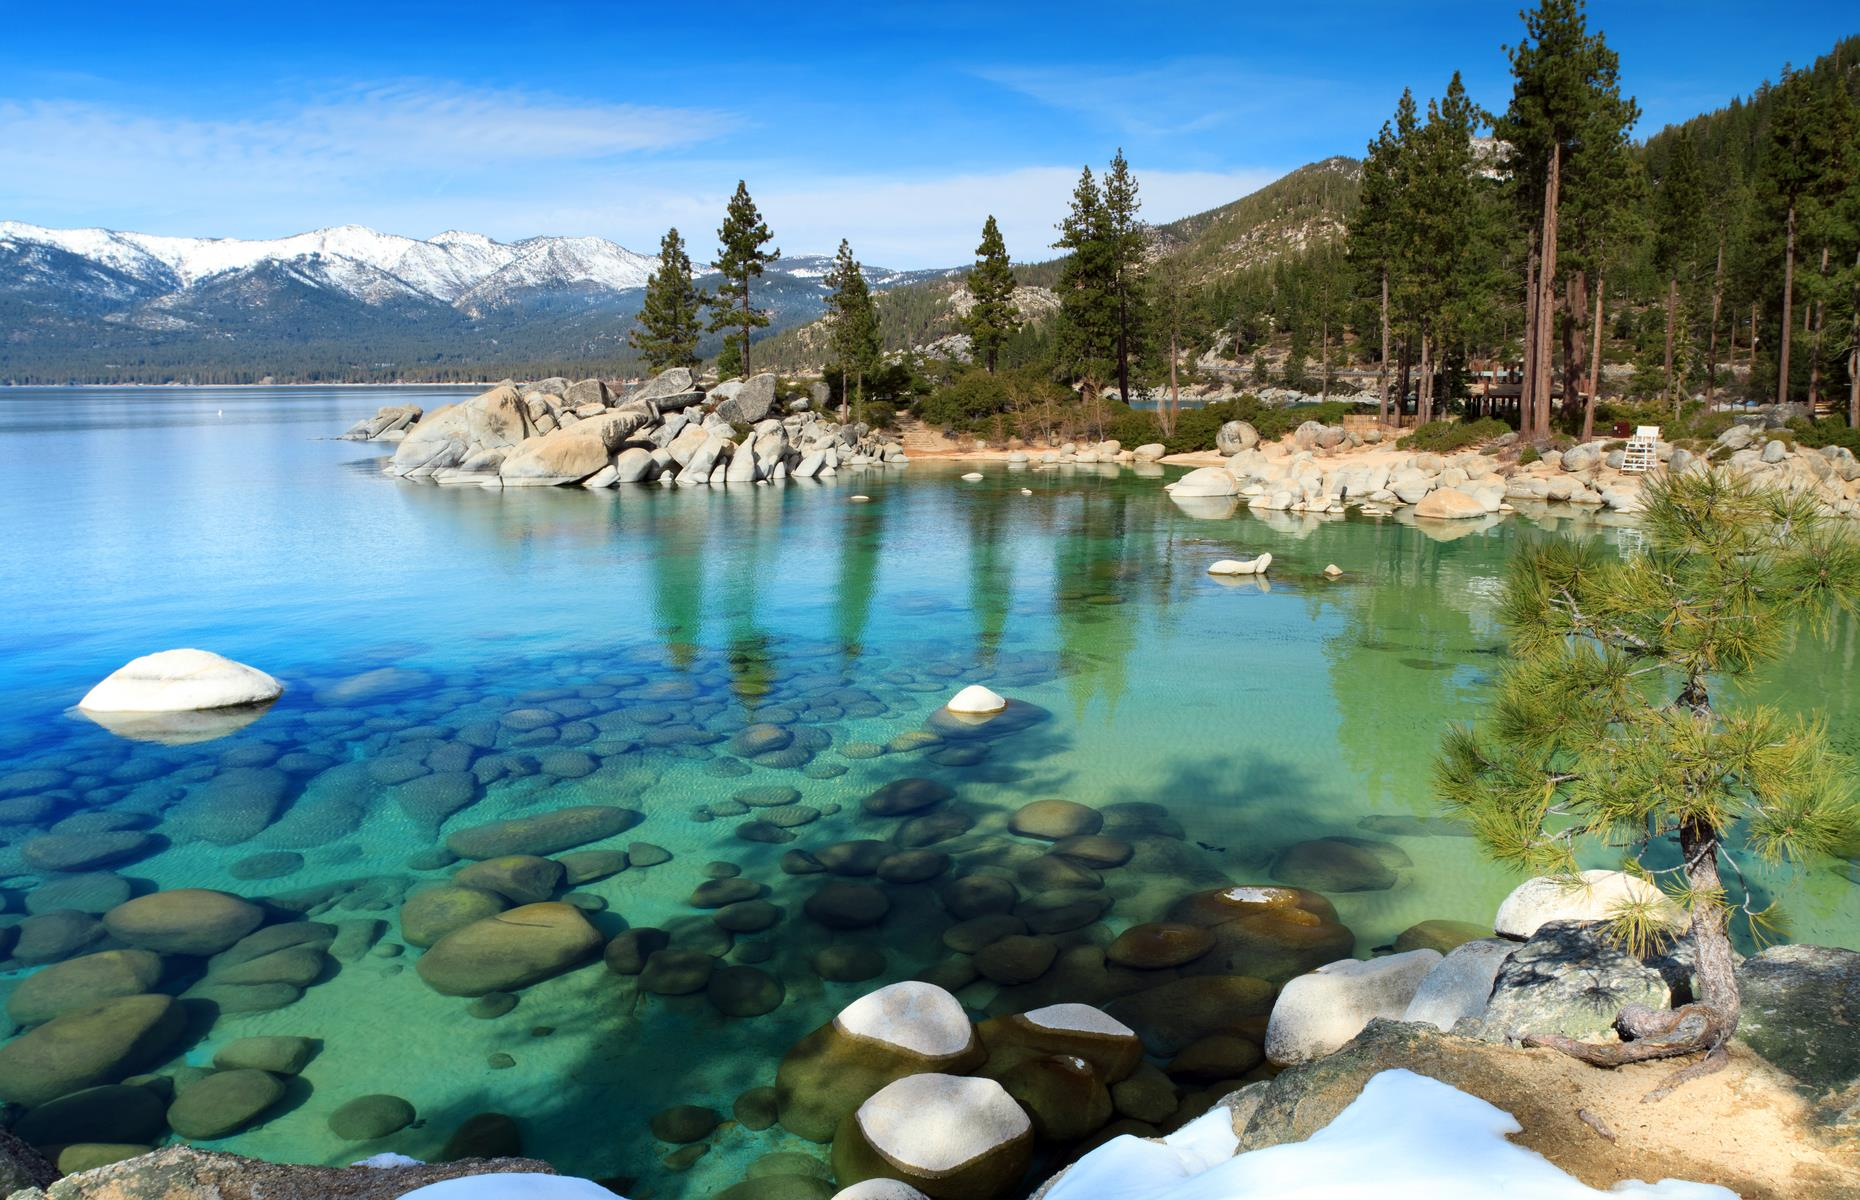 Slide 6 of 31: Lake Tahoe, a freshwater lake straddling the California and Nevada border, is mesmerizing. Its clear blue waters sparkle against a backdrop of the Sierra Nevada Mountains. It's truly a sight to behold.